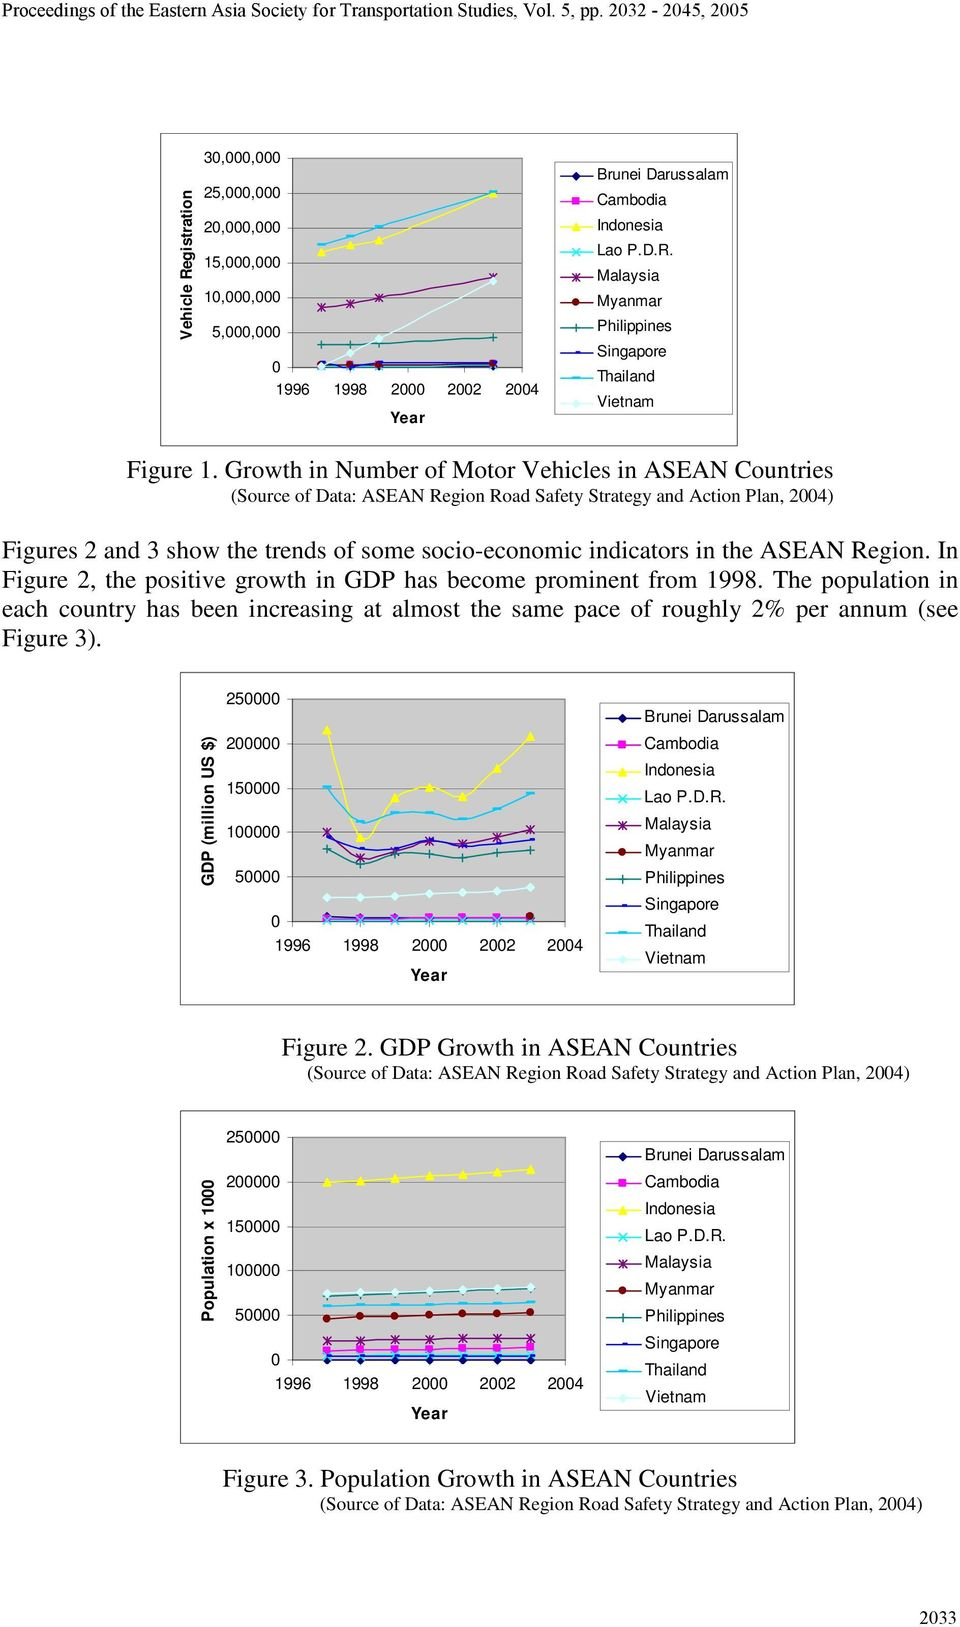 ASEAN Region. In Figure 2, the positive growth in GDP has become prominent from 1998. The population in each country has been increasing at almost the same pace of roughly 2% per annum (see Figure 3).